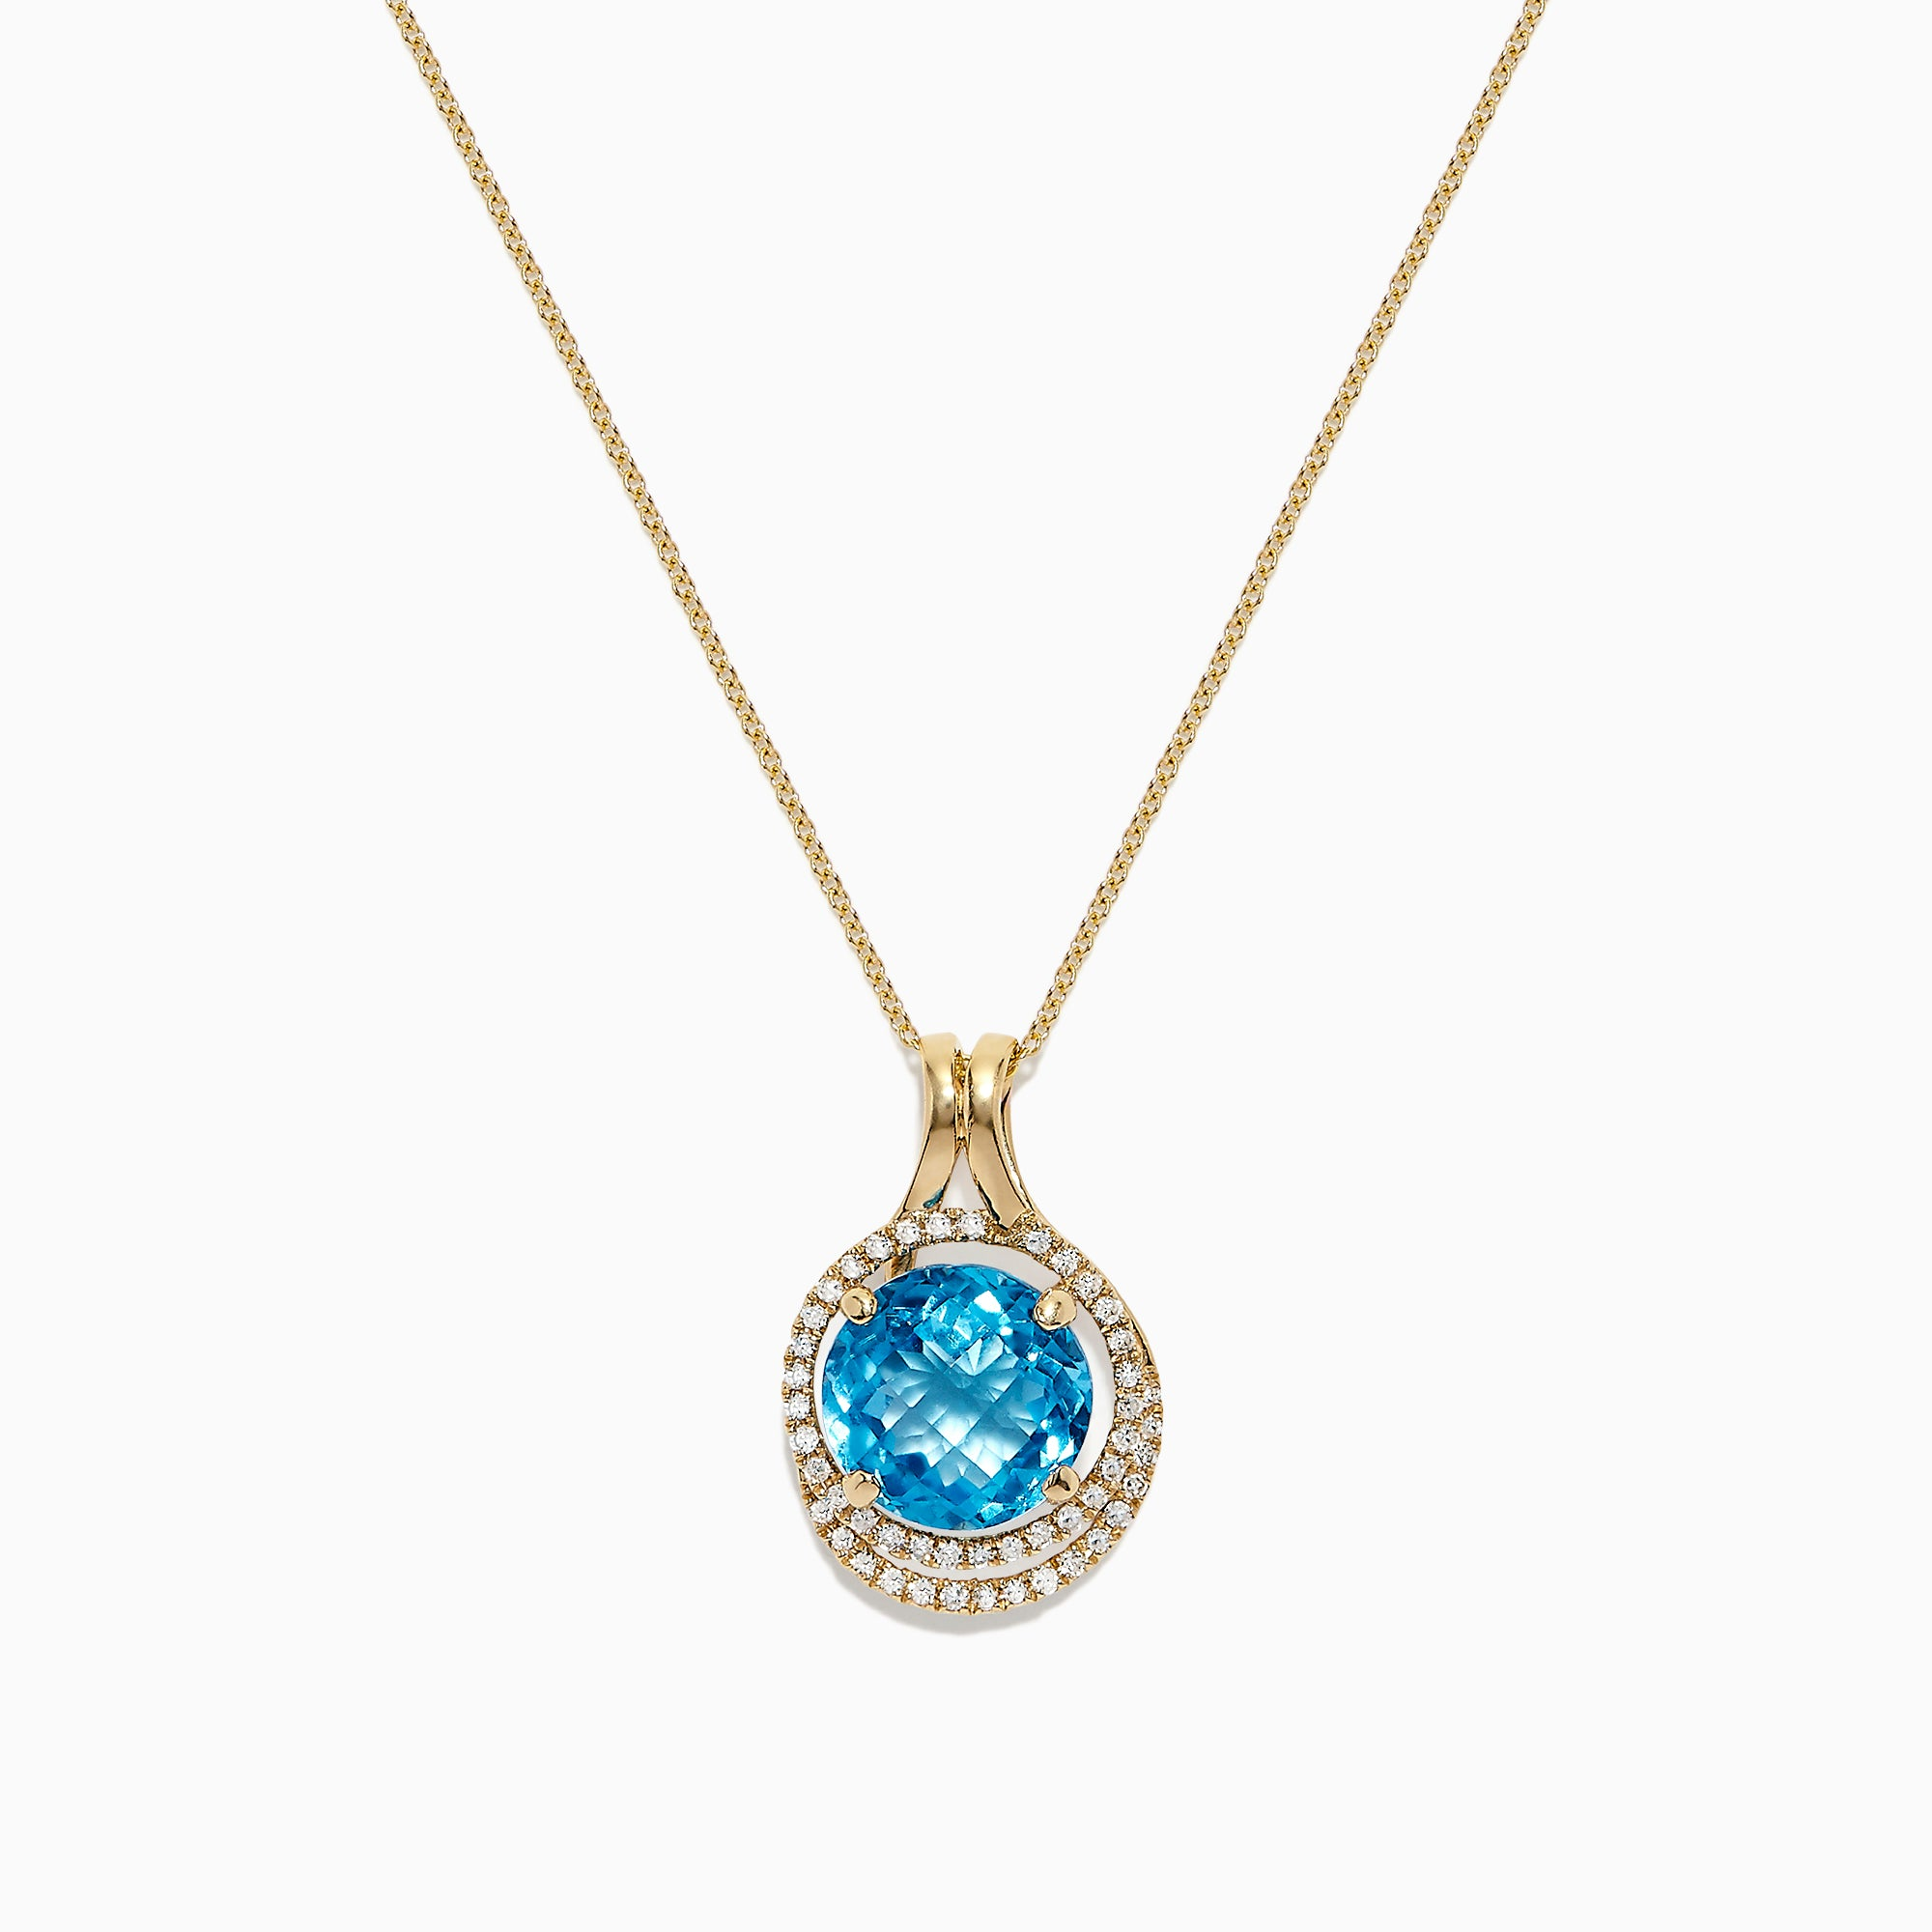 Effy 14K Yellow Gold Blue Topaz and Diamond Pendant, 5.63 TCW